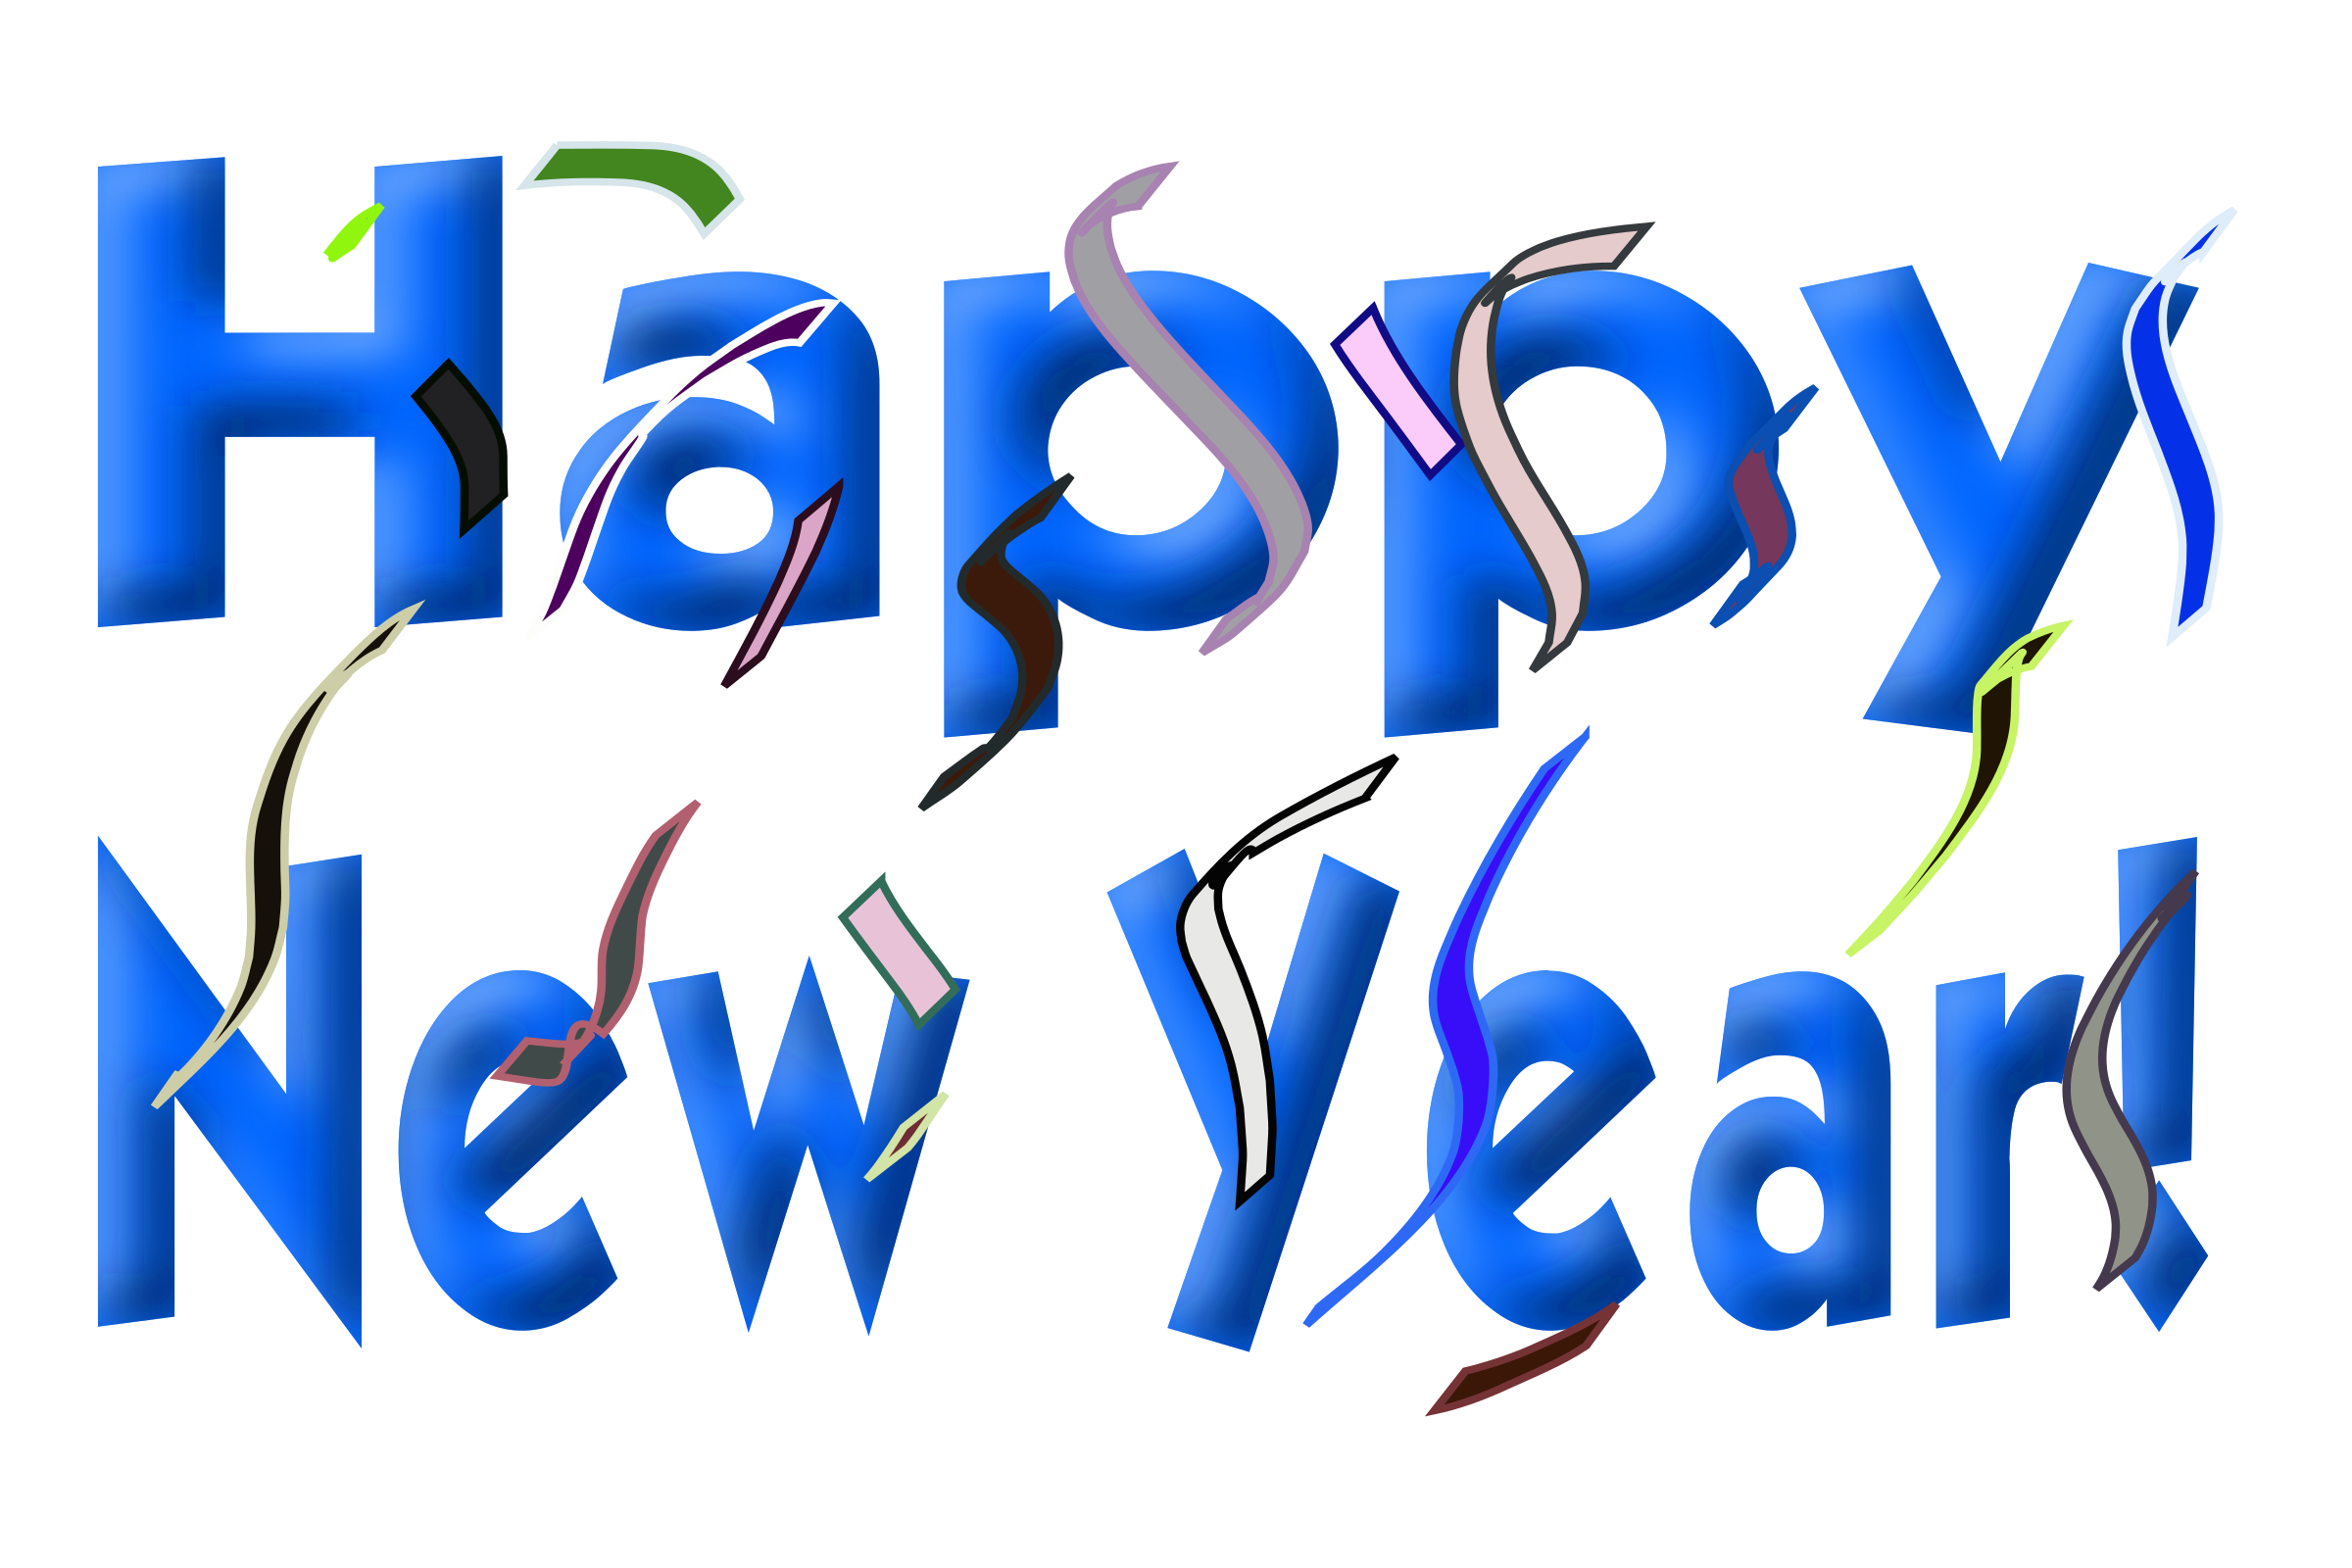 png transparent stock Happy big image png. Year clipart new year's day